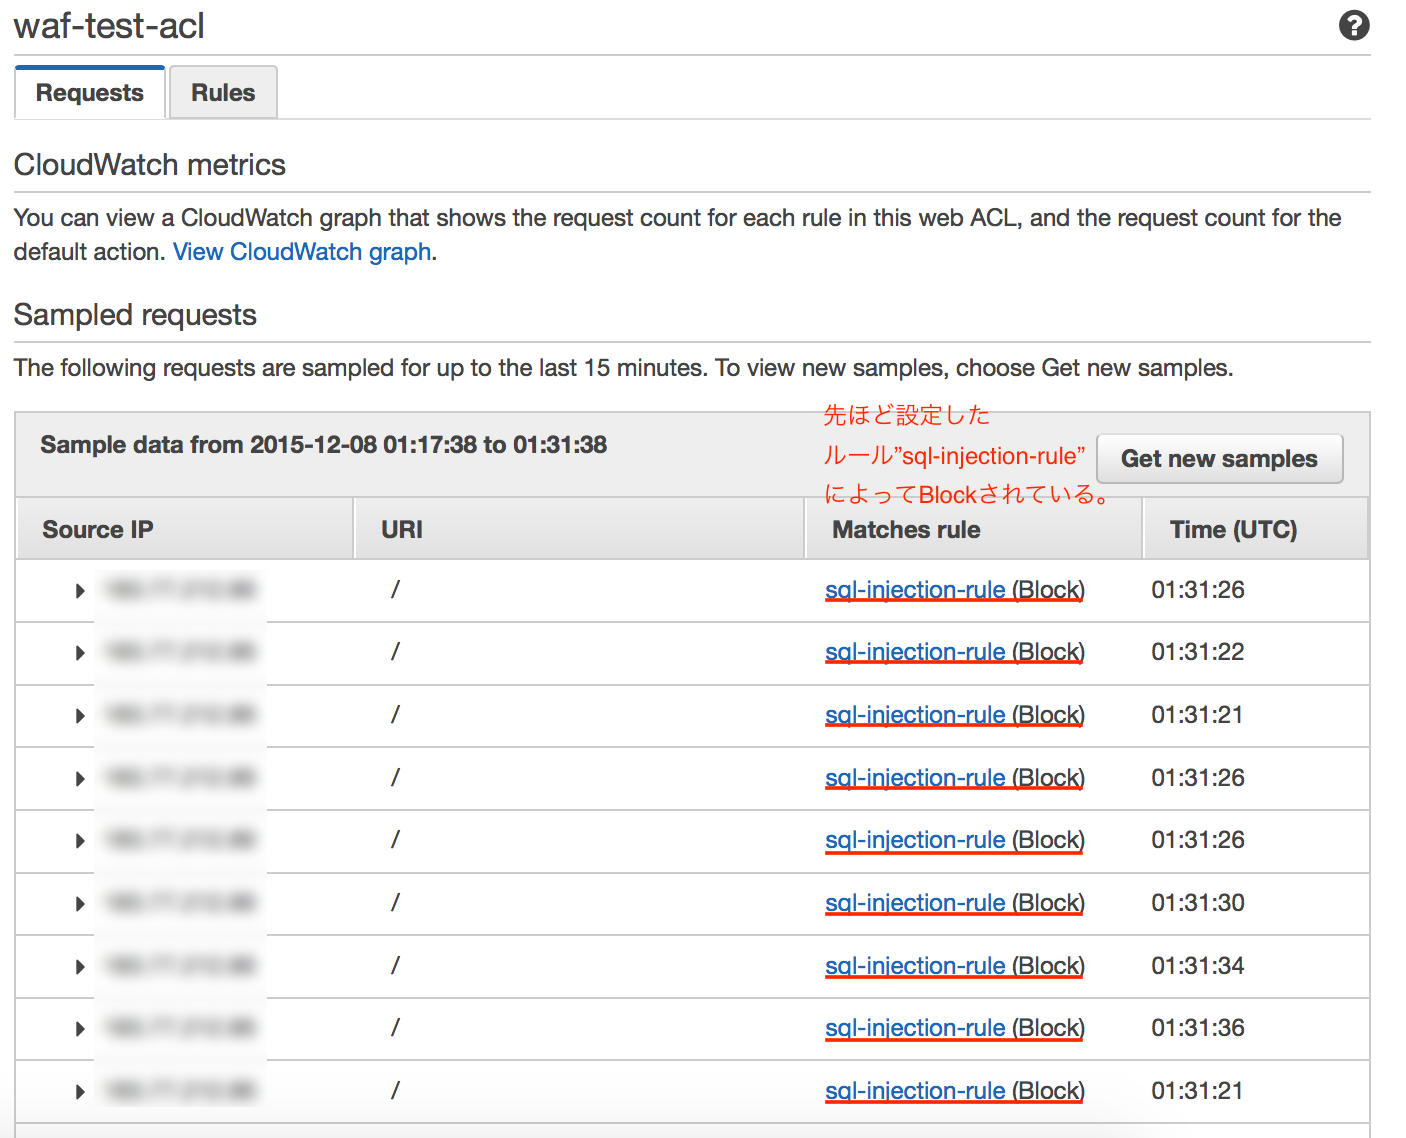 aws-waf_sql-injection_2015120415-1.png